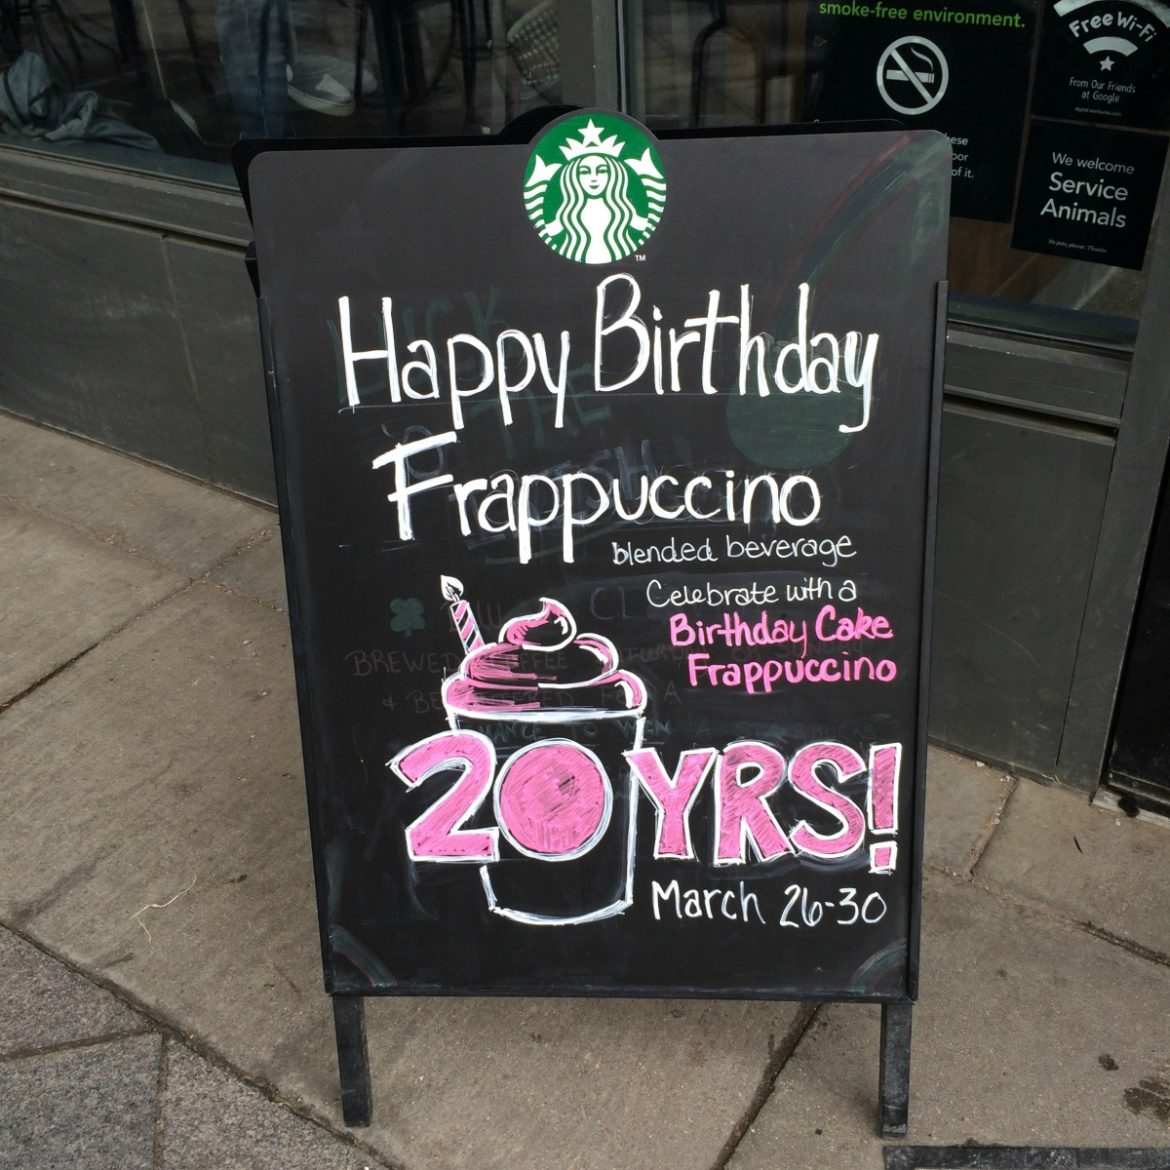 Celebrate The Frappuccinos 20th Try Birthday Day Cake Frappuccino March 26th 30th